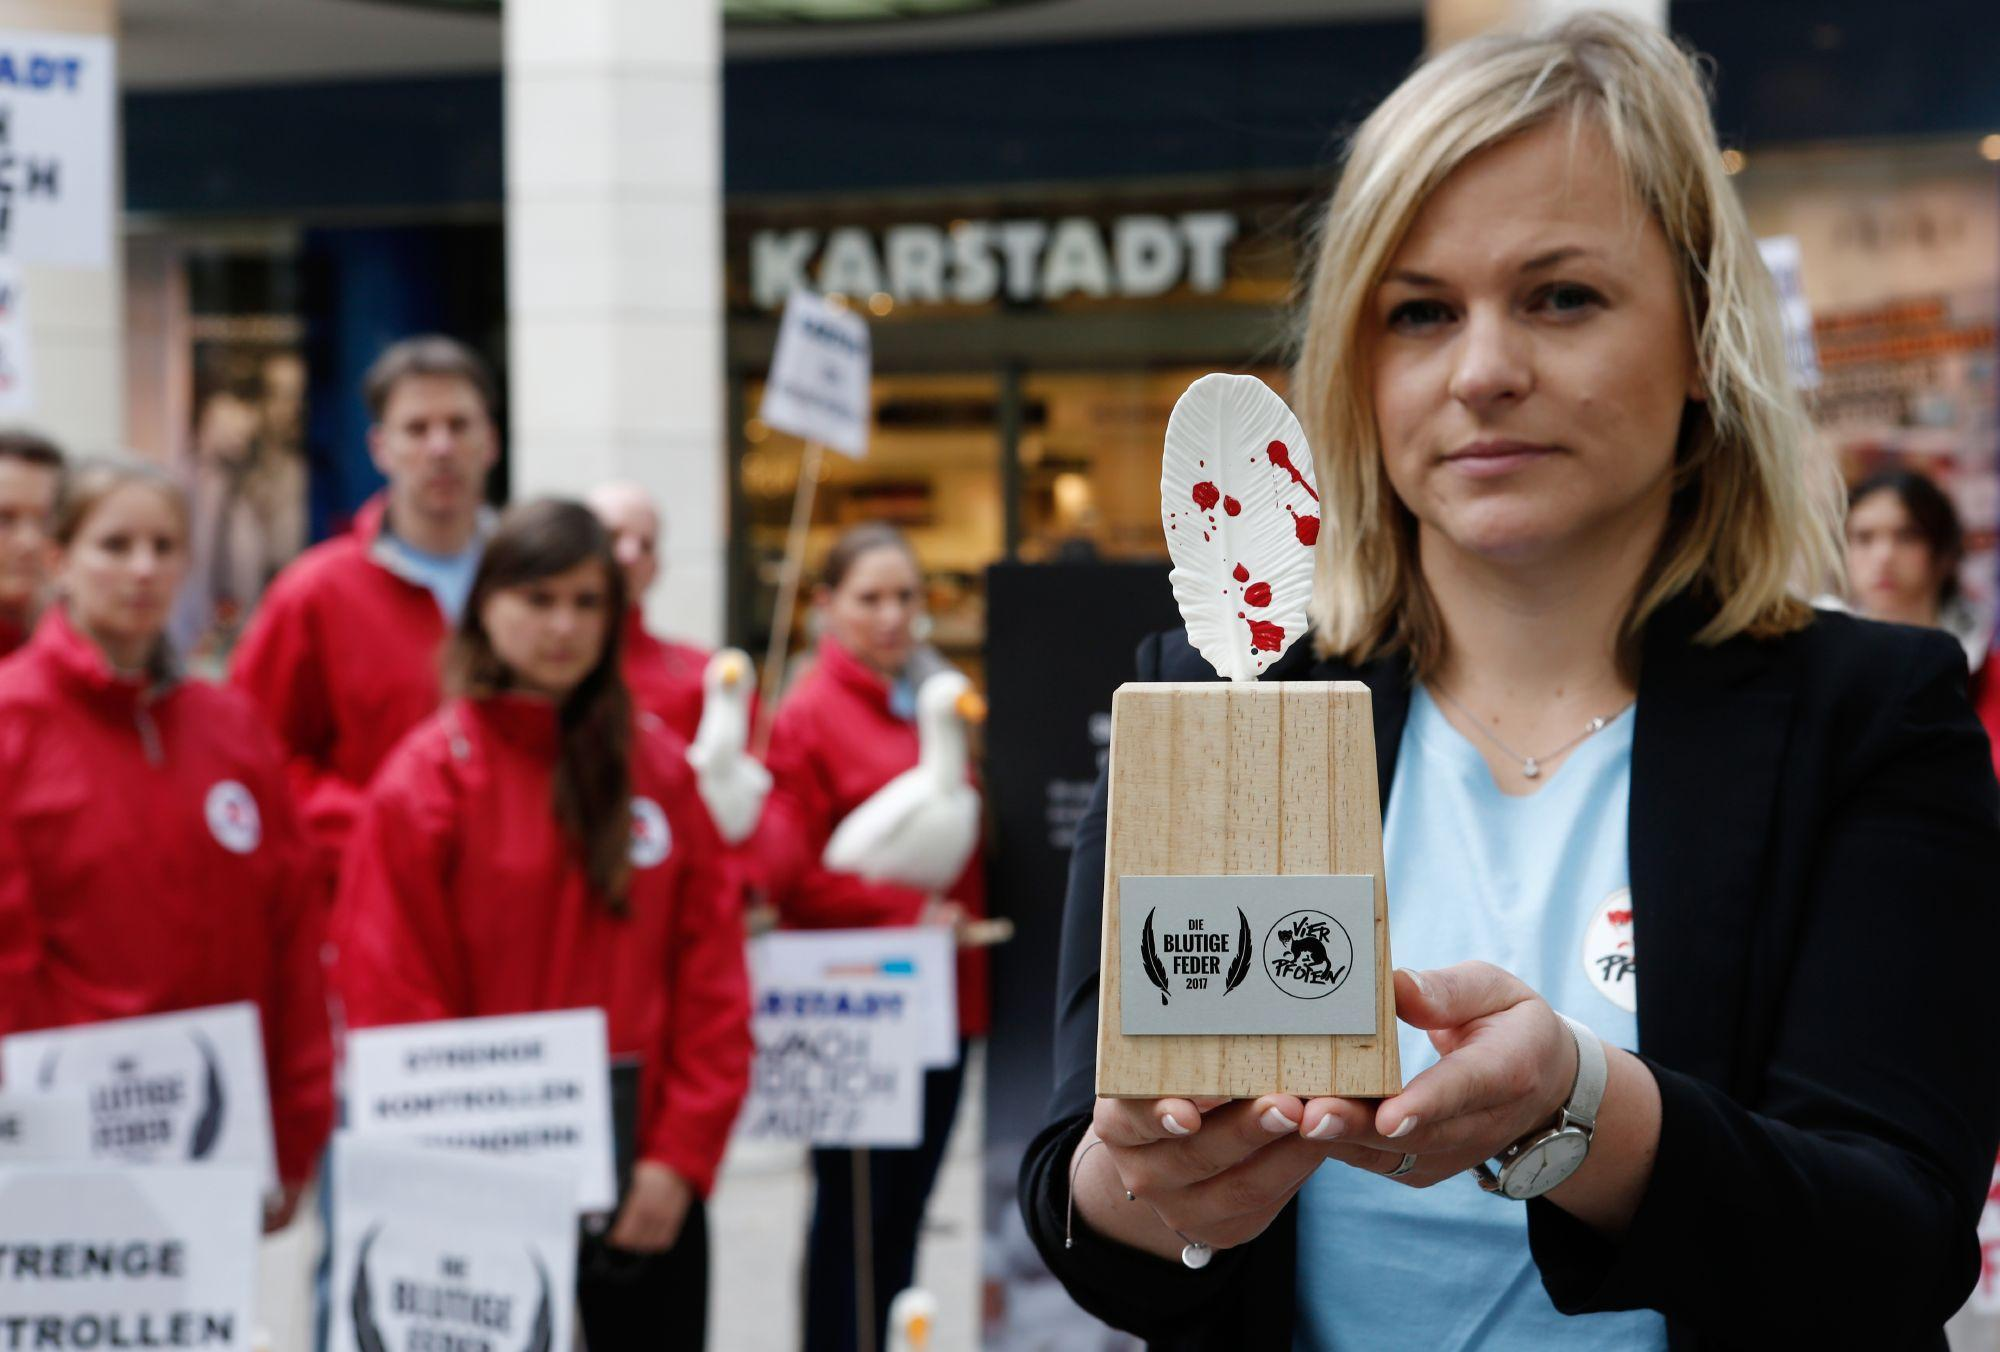 Head of Programs for FOUR PAWS Germany Denise Schmidt hands Bloody Feather award to fashion company Karstadt